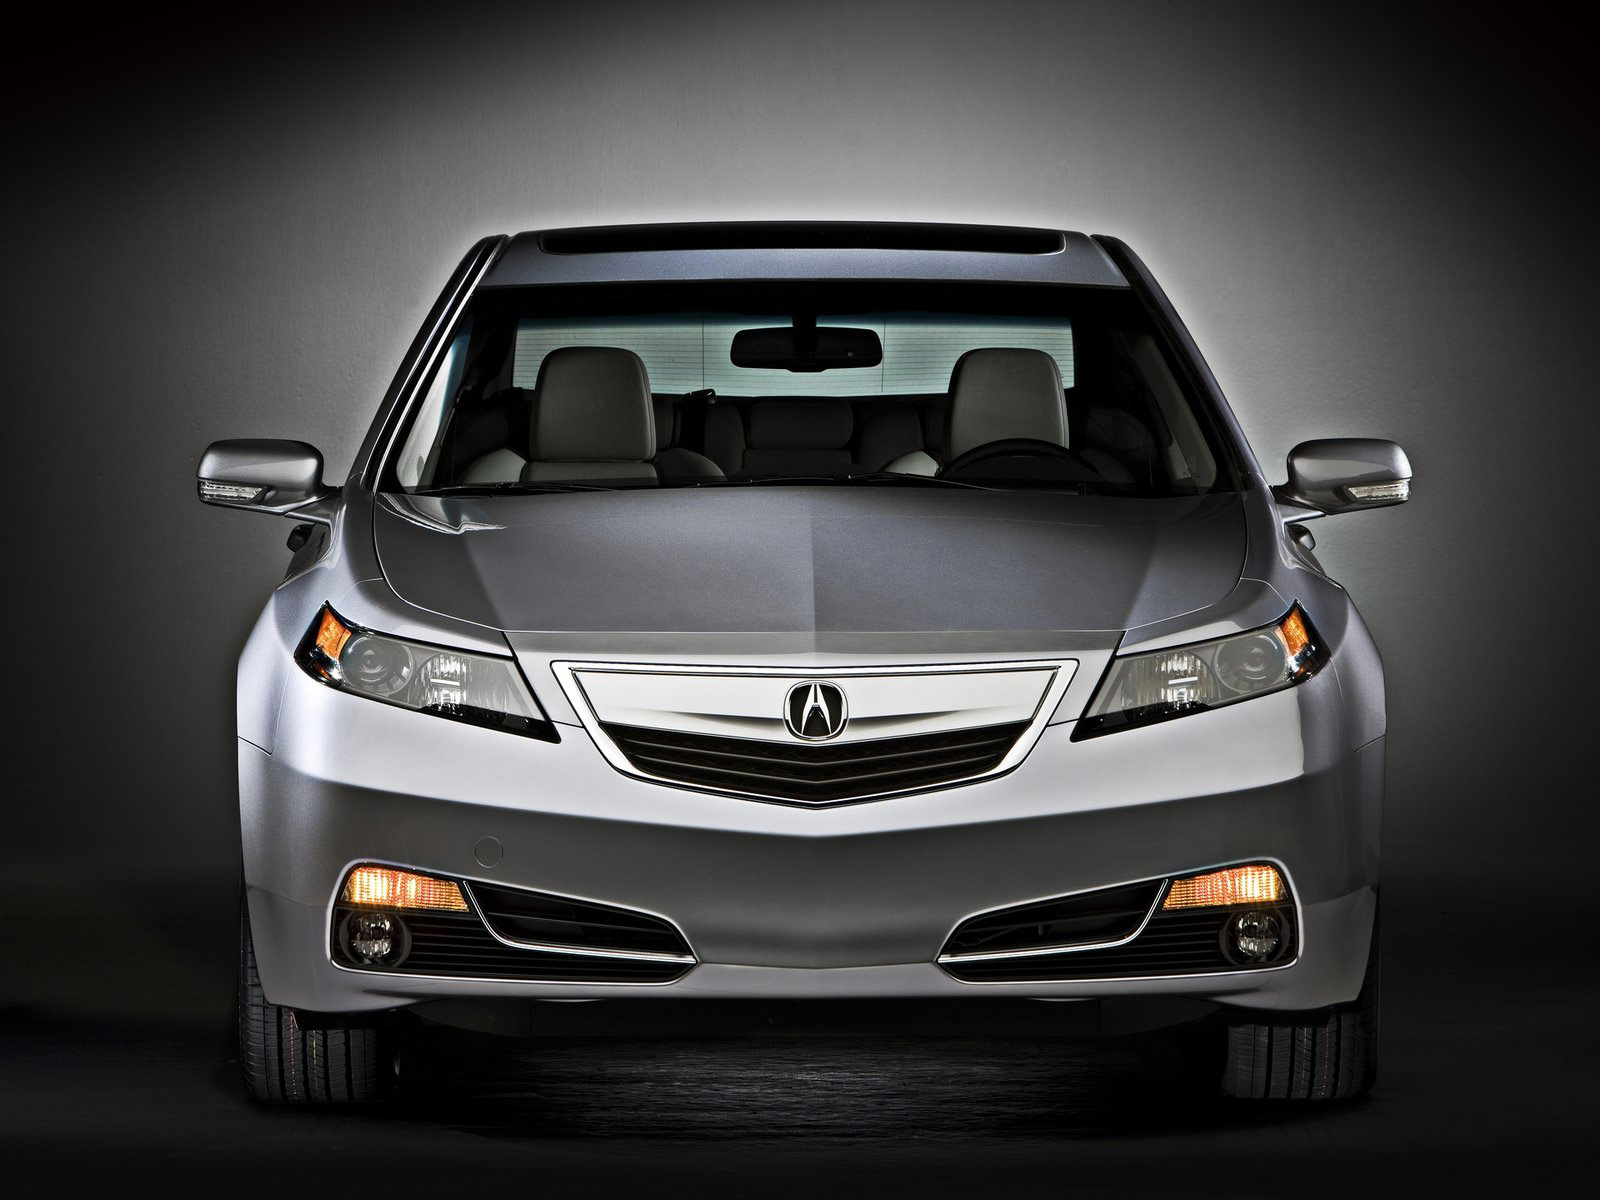 2012 ACURA TL accident lawyers info | Japanese car photos | on